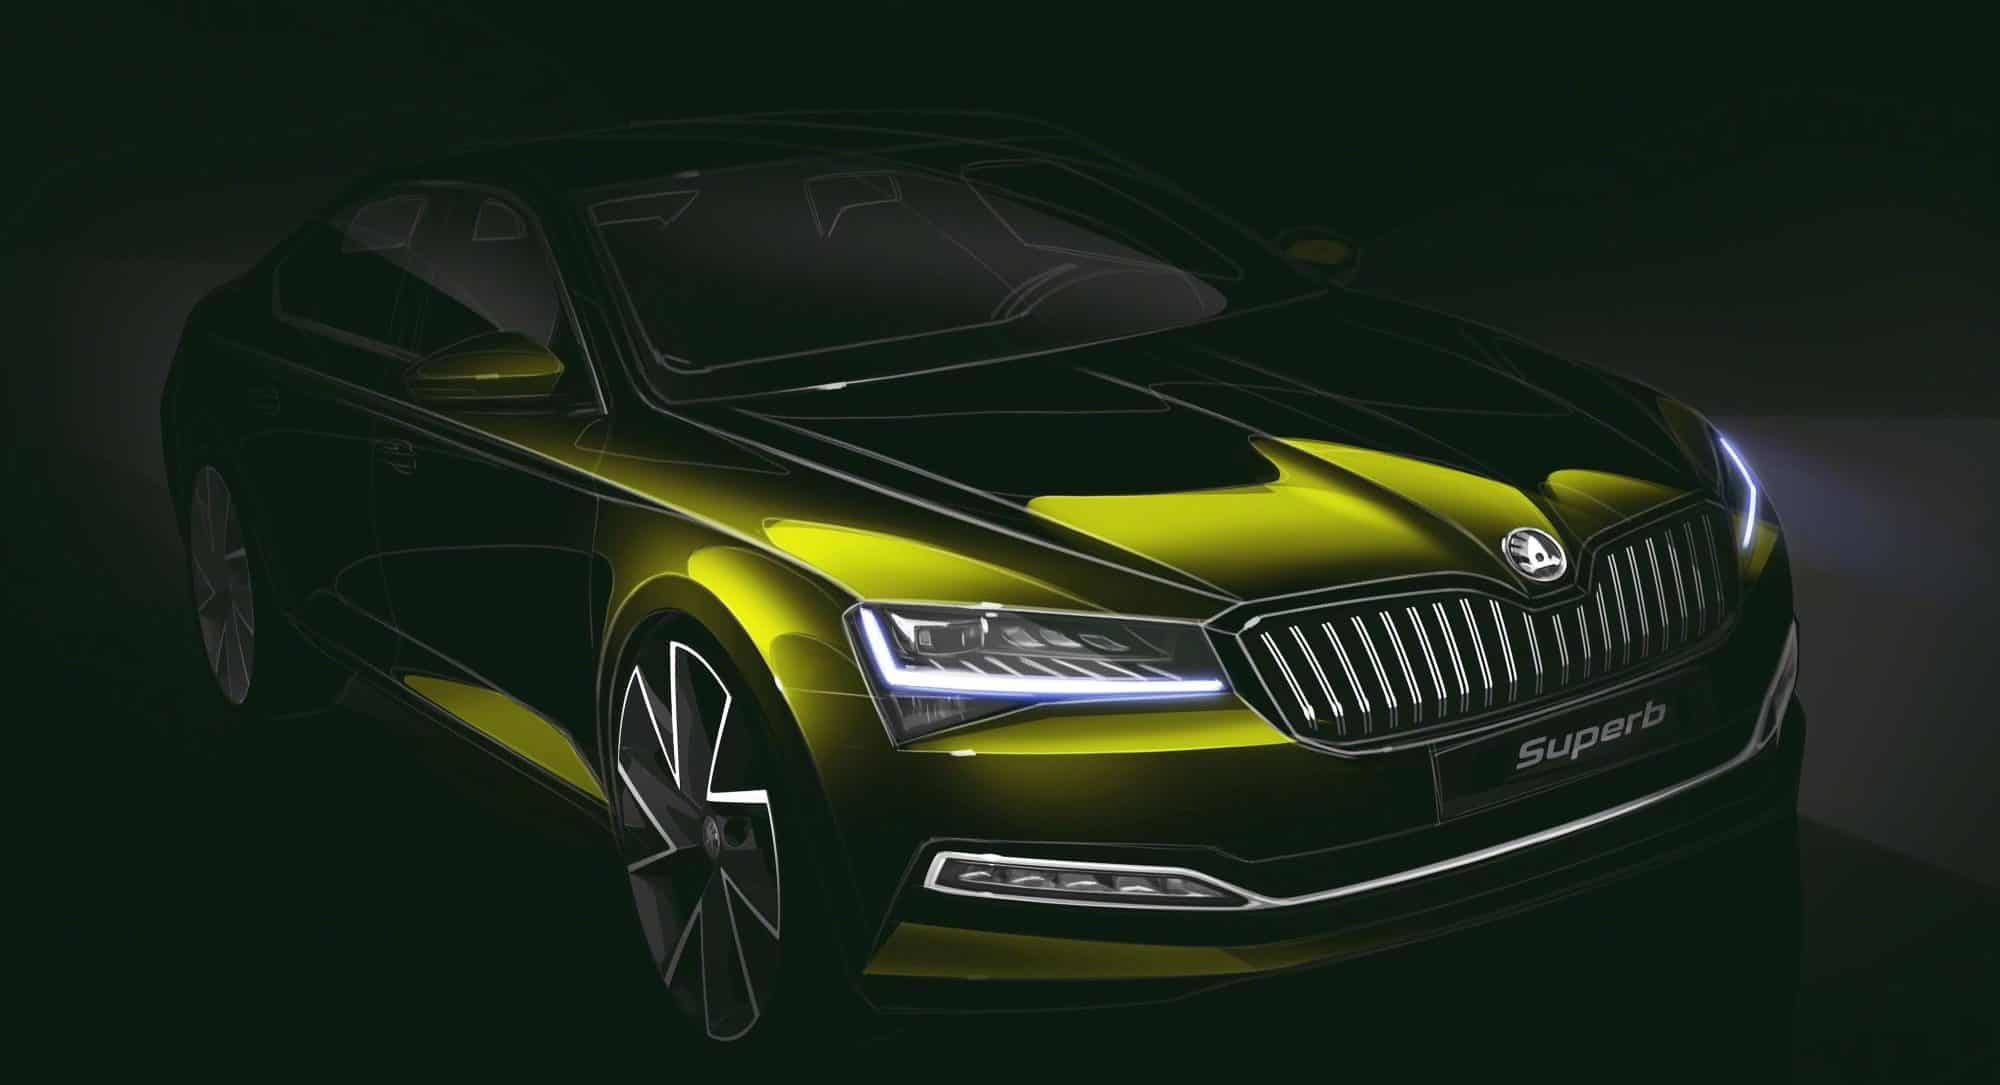 ŠKODA reveals design sketch for the revised SUPERB